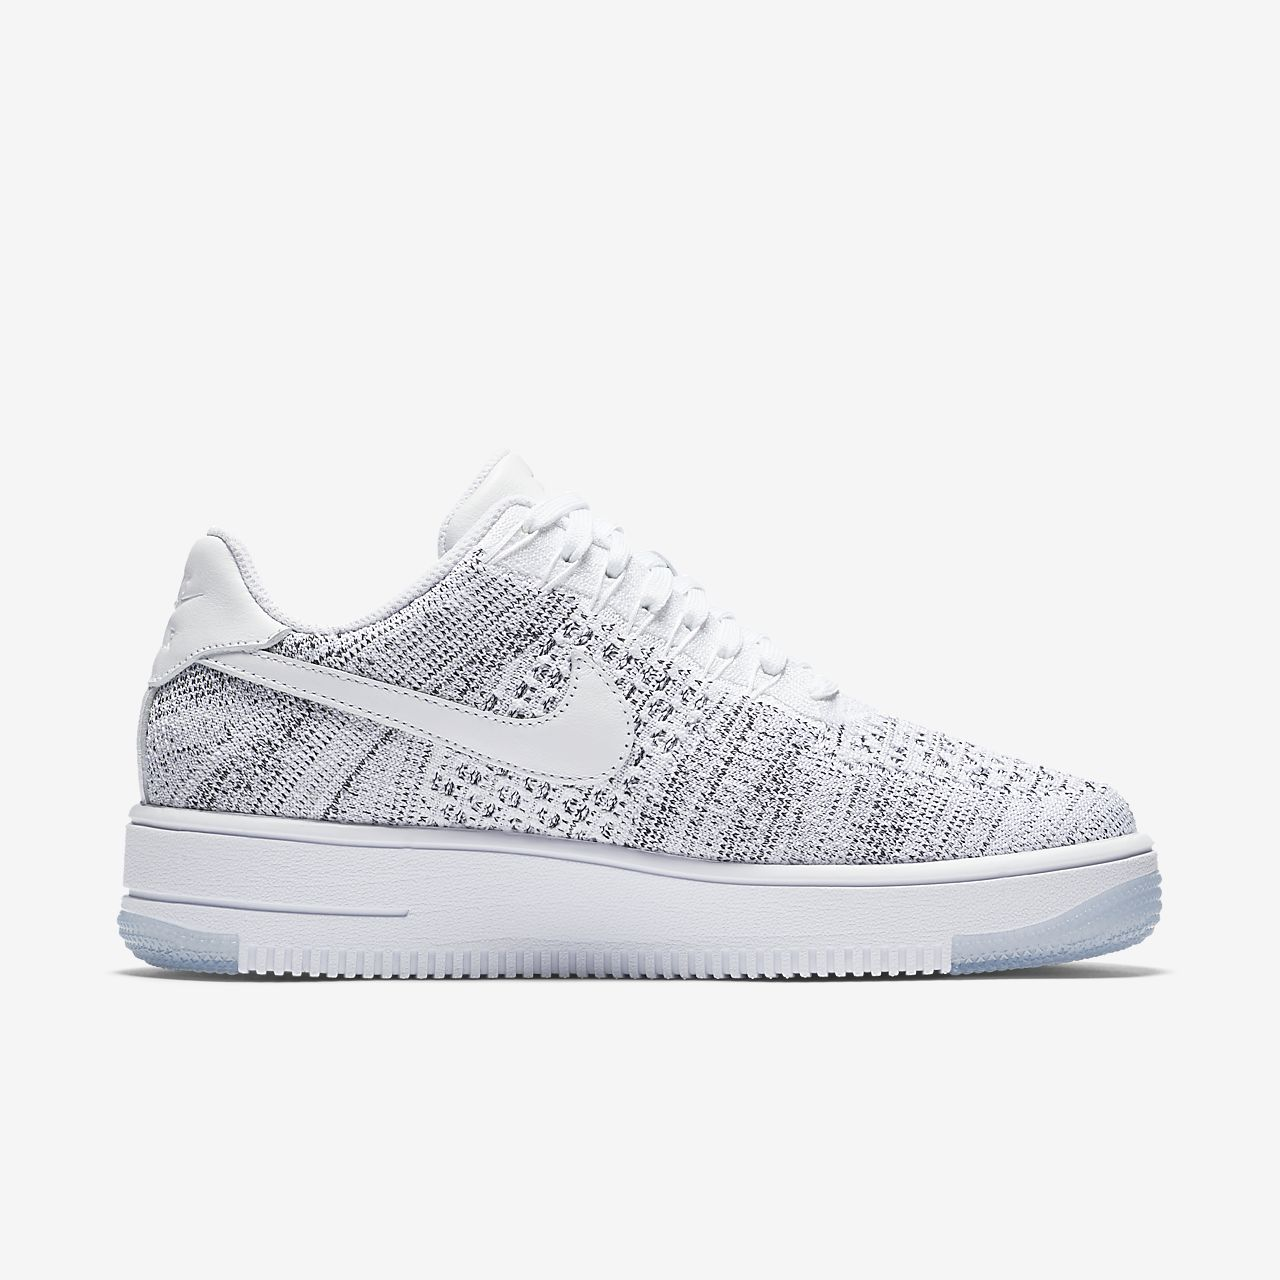 flyknit air force 1 grey nz